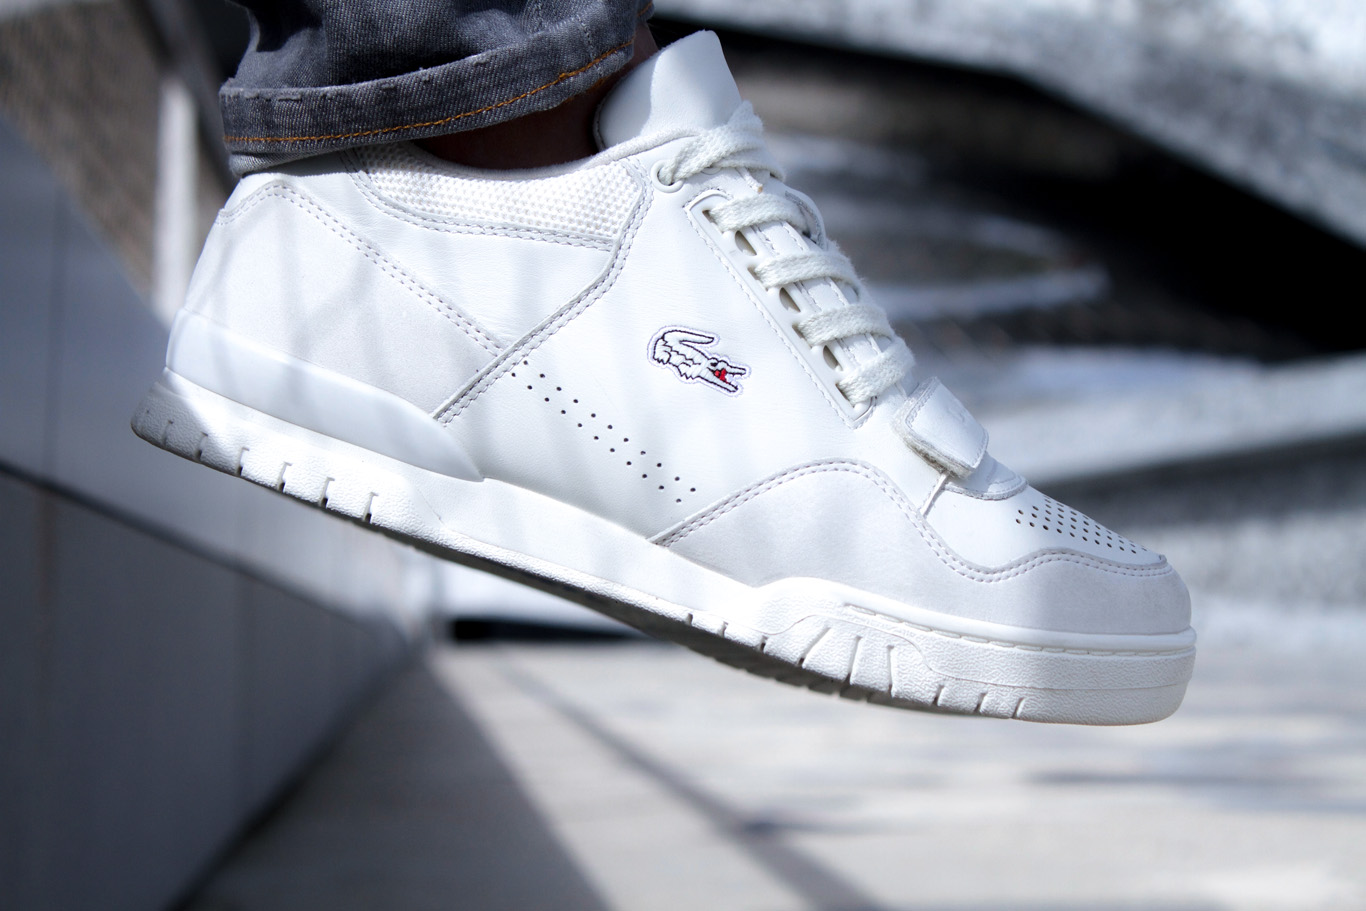 Basket Lacoste Missouri G117 1 LEATHER WHITE